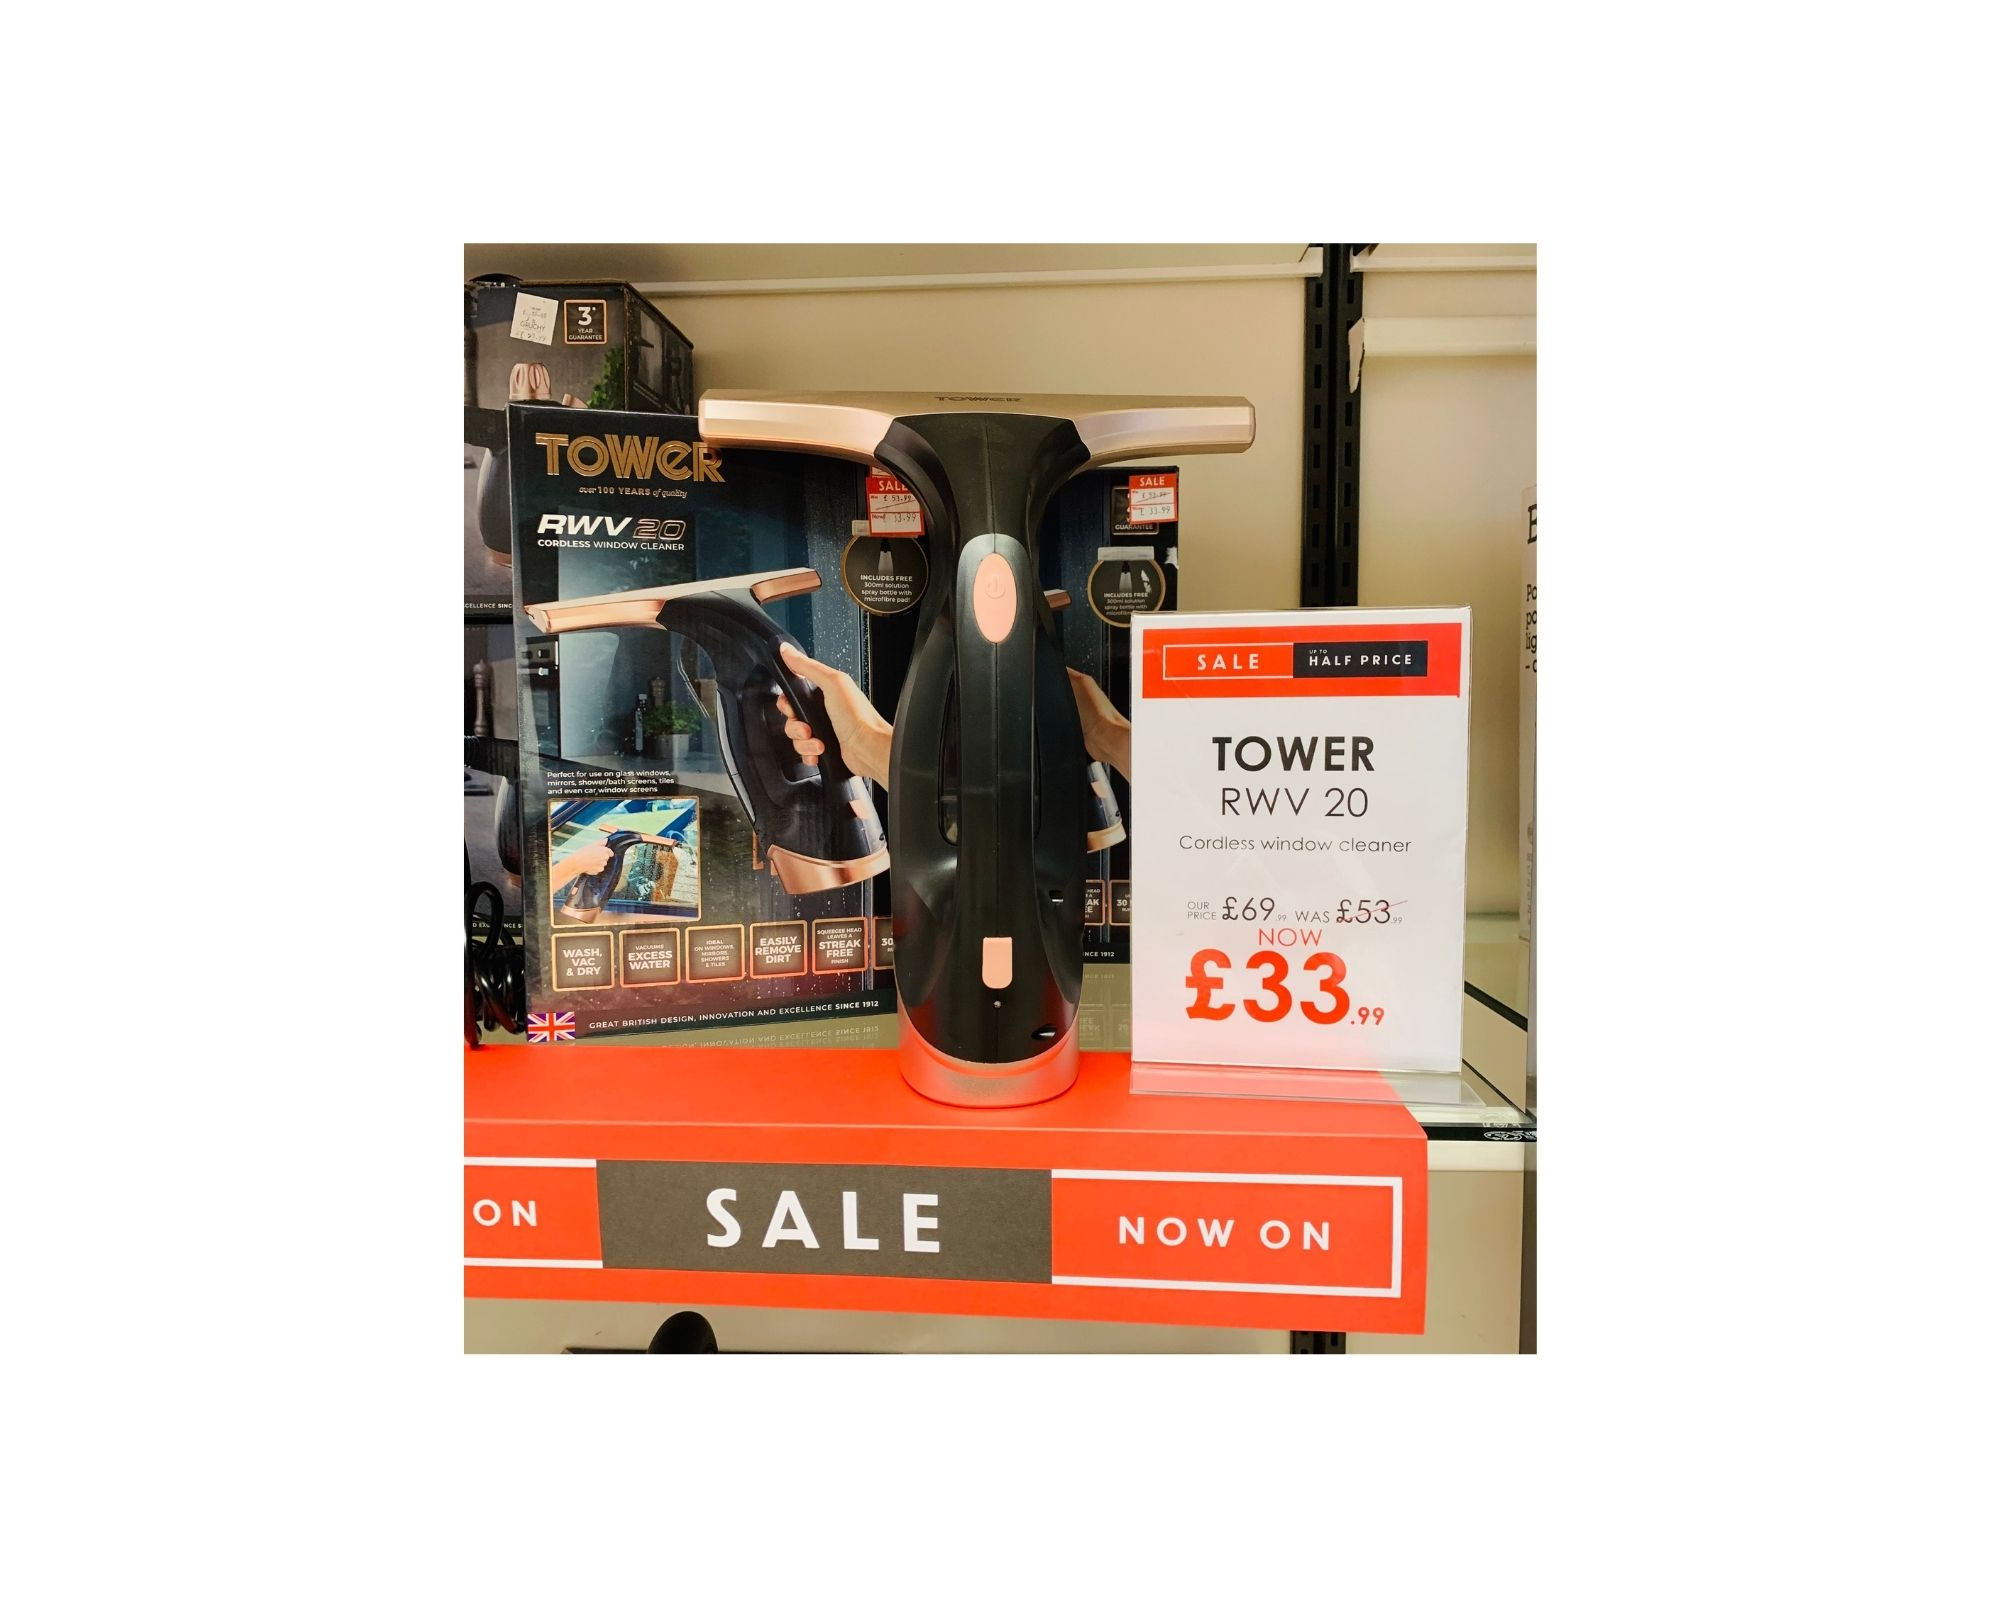 Tower  RWV 20 Cordless Window Cleaner  UK £69.99 | JSY £53.99 |  NOW £33.99